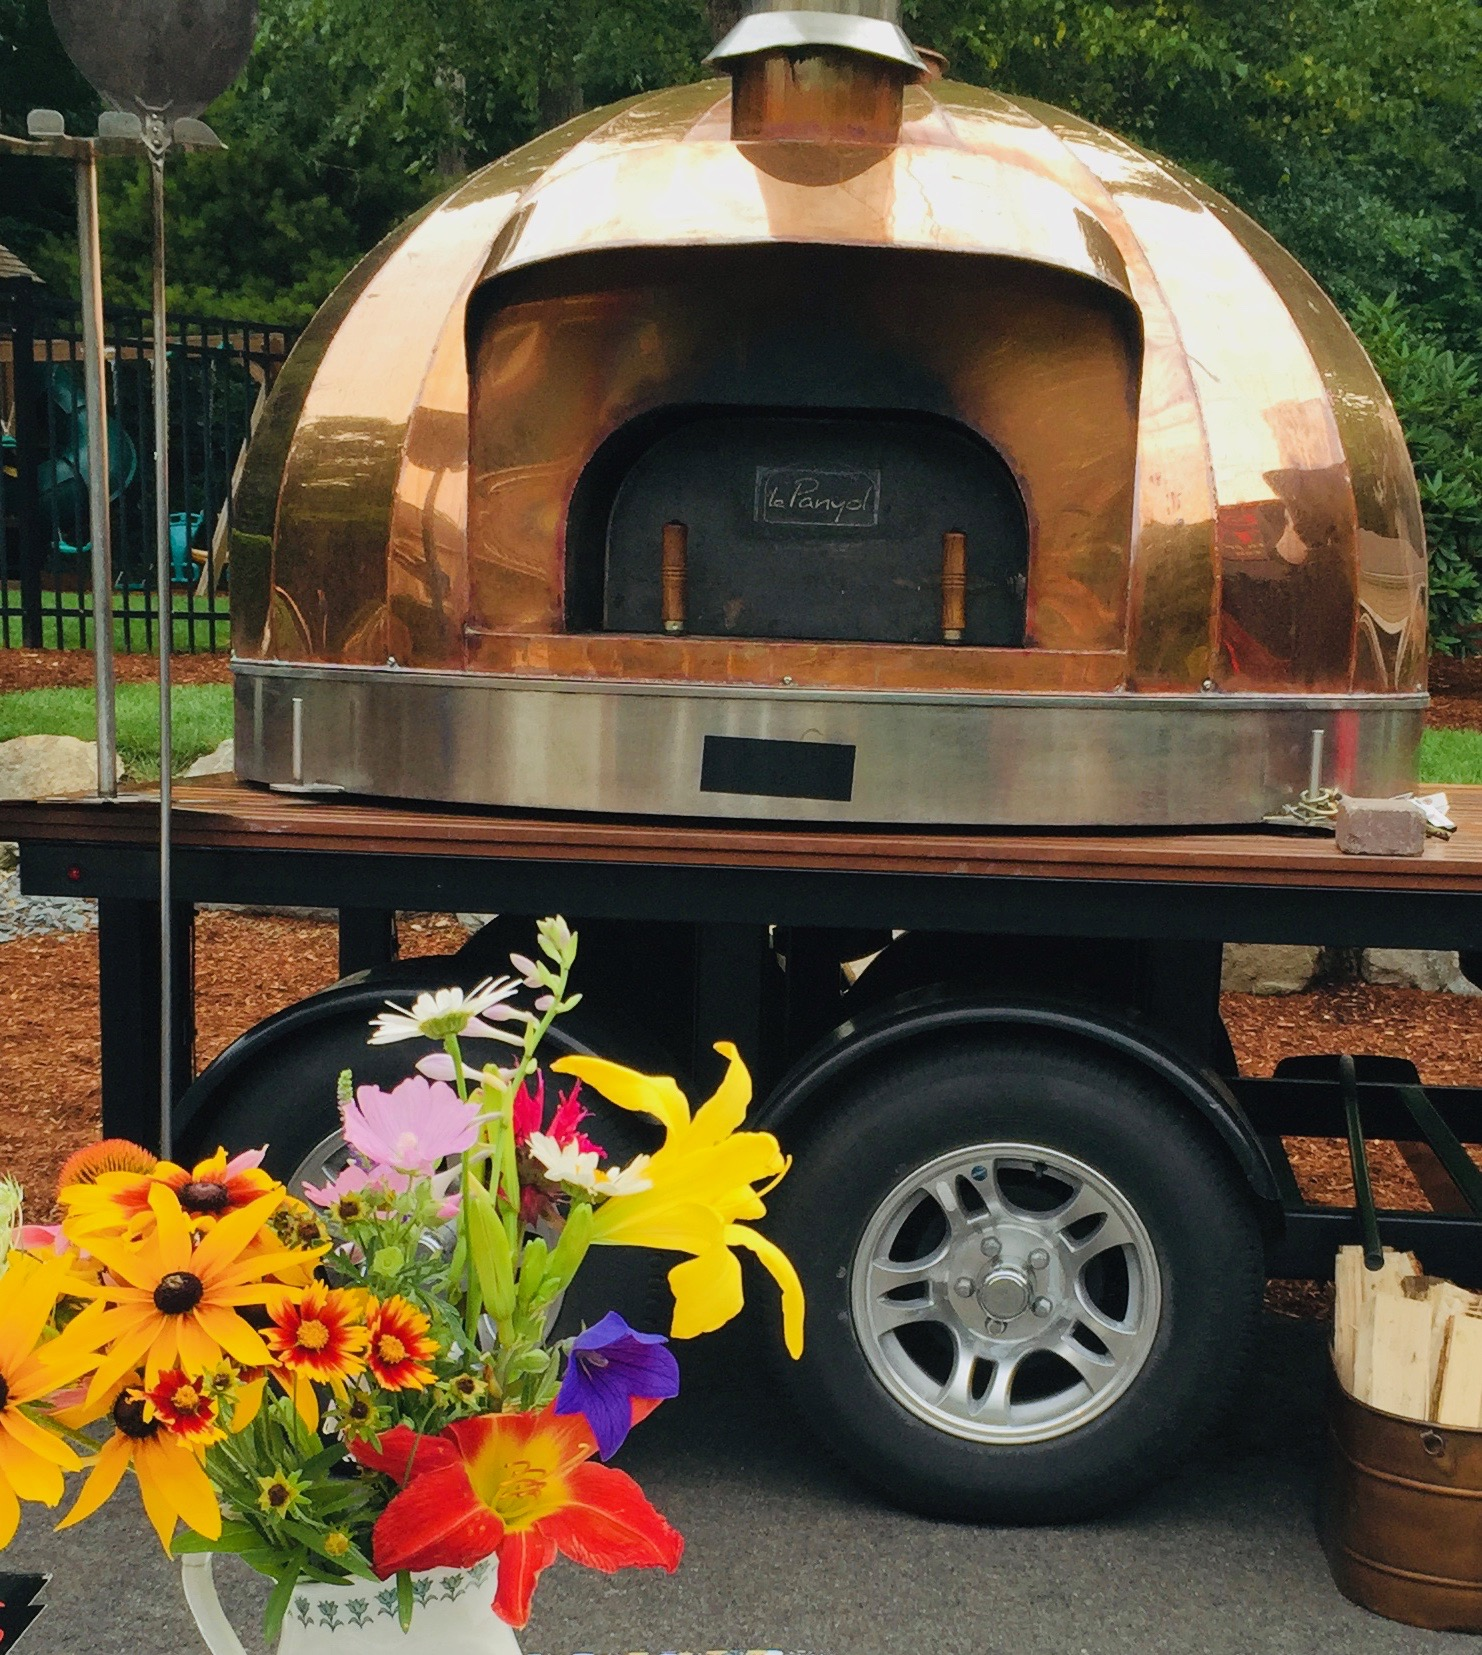 Our Copper Oven and Beautiful Wildflowers